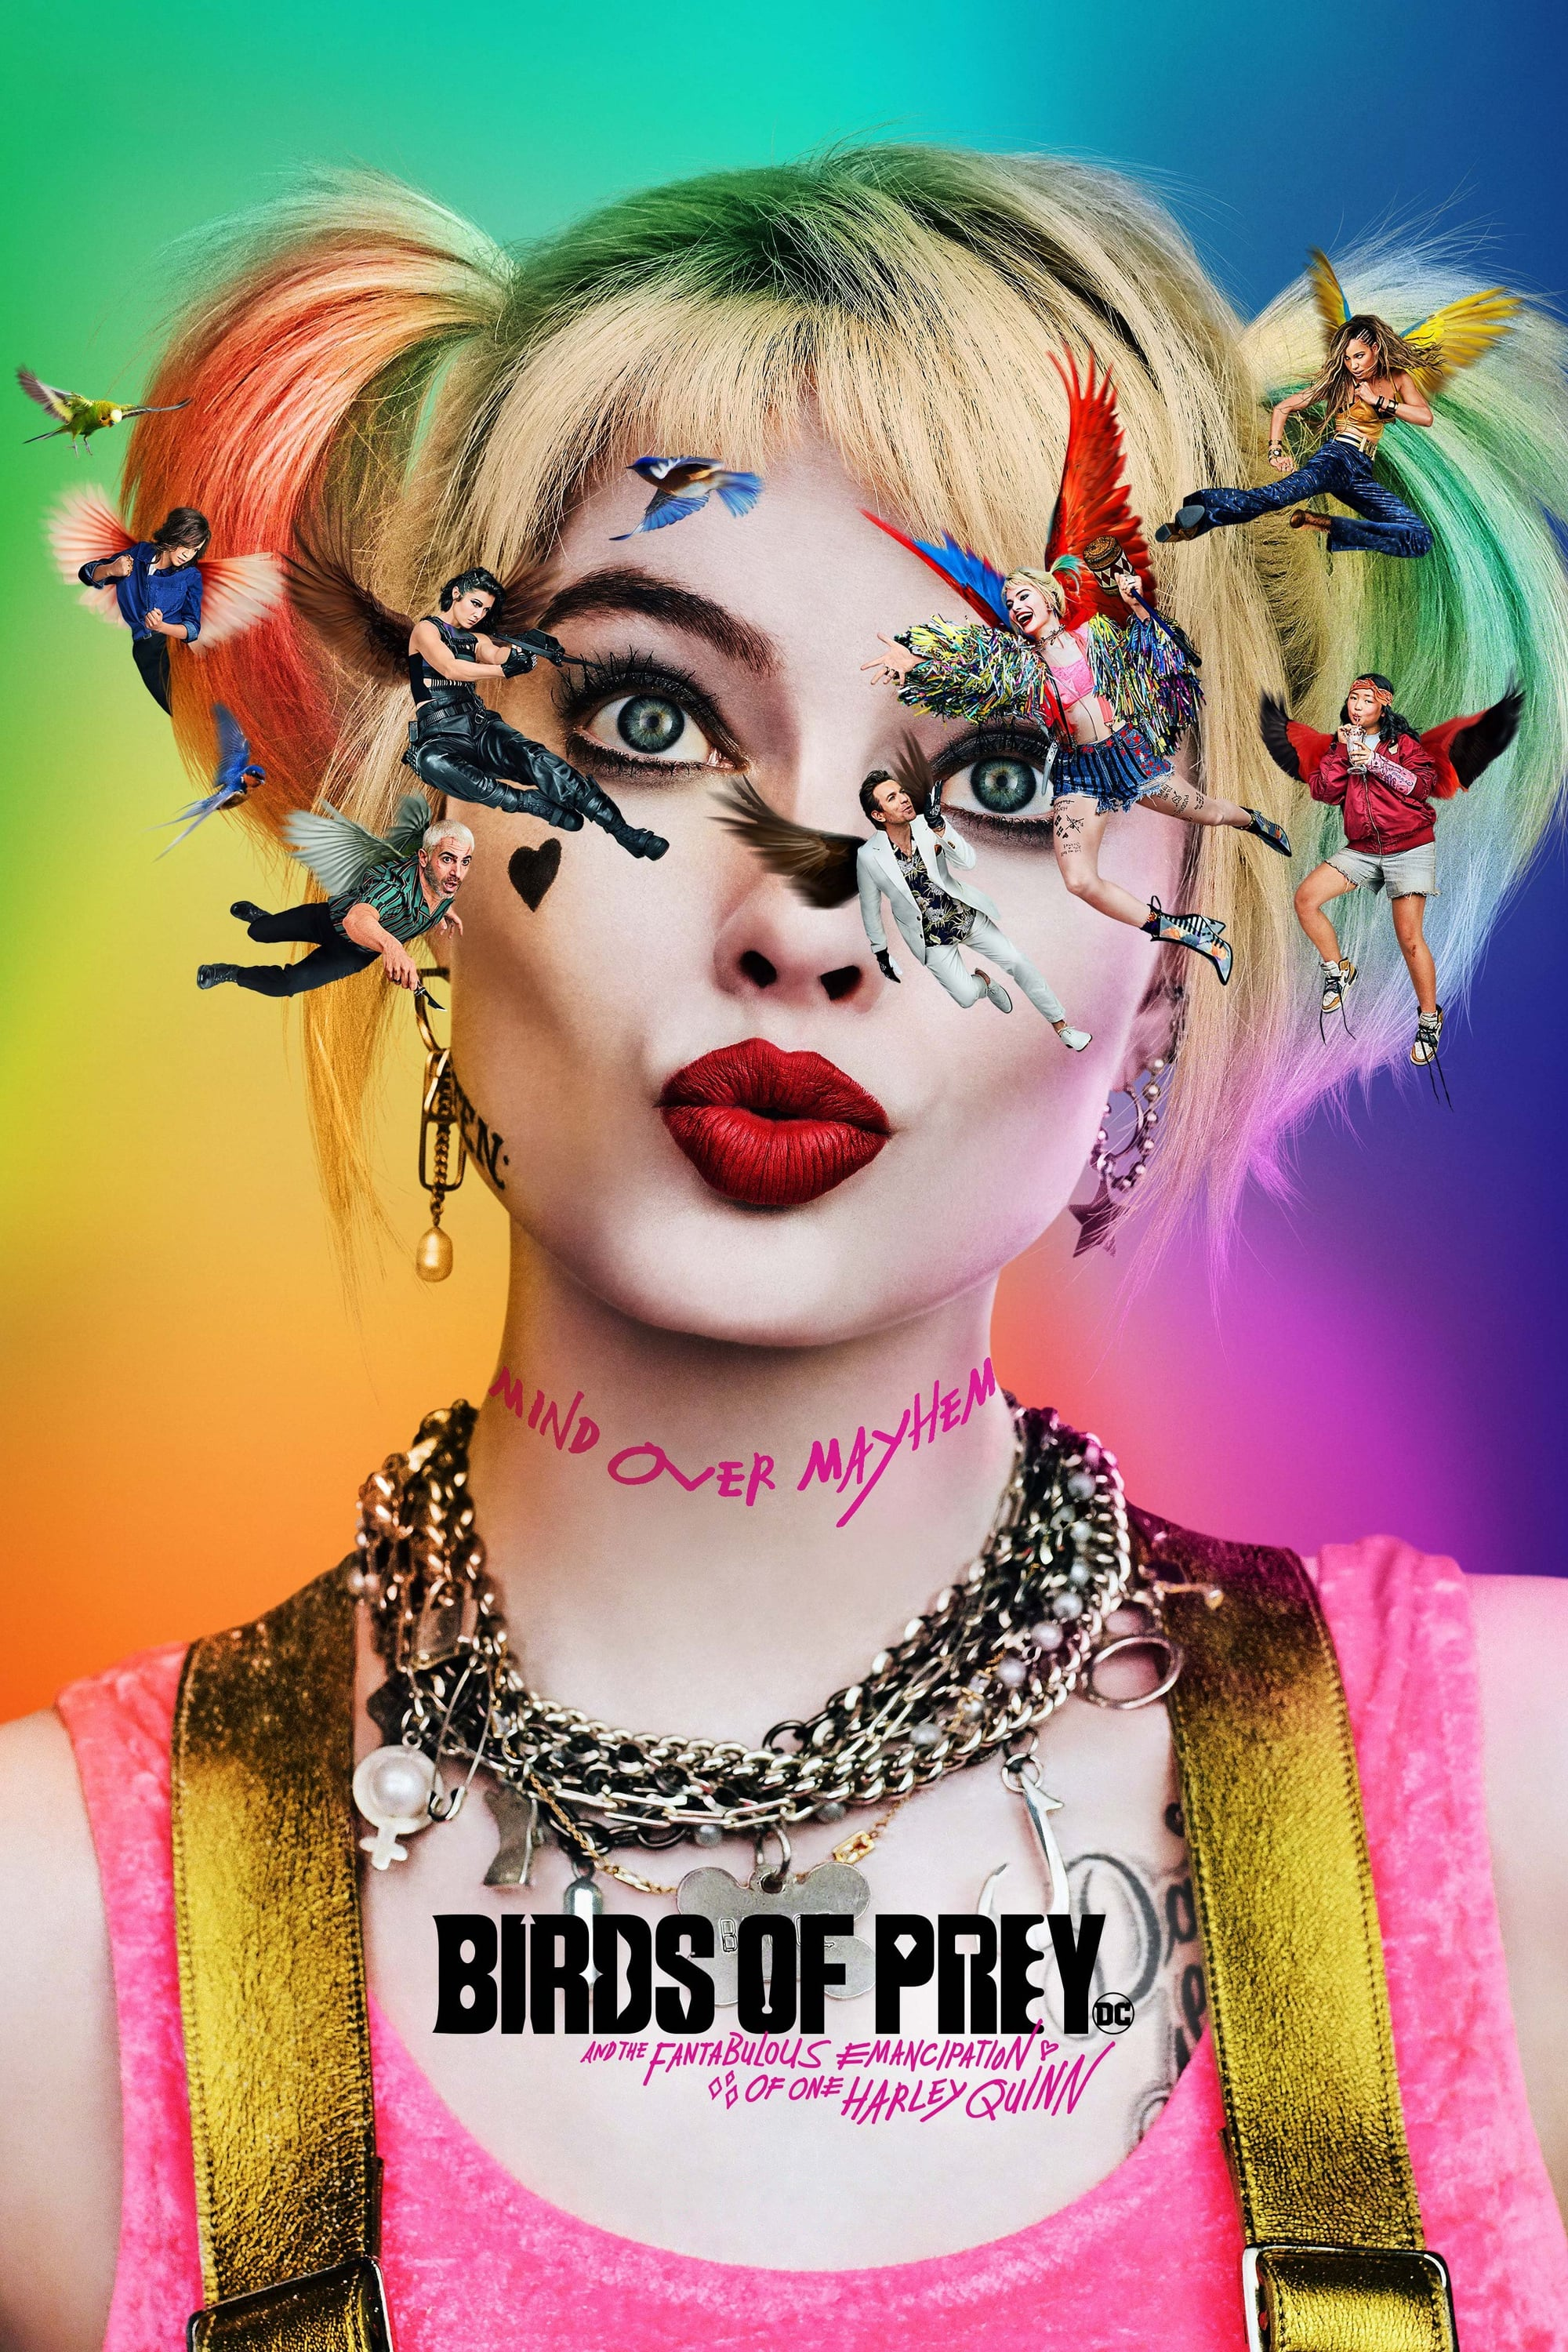 image for Birds of Prey (and the Fantabulous Emancipation of One Harley Quinn)